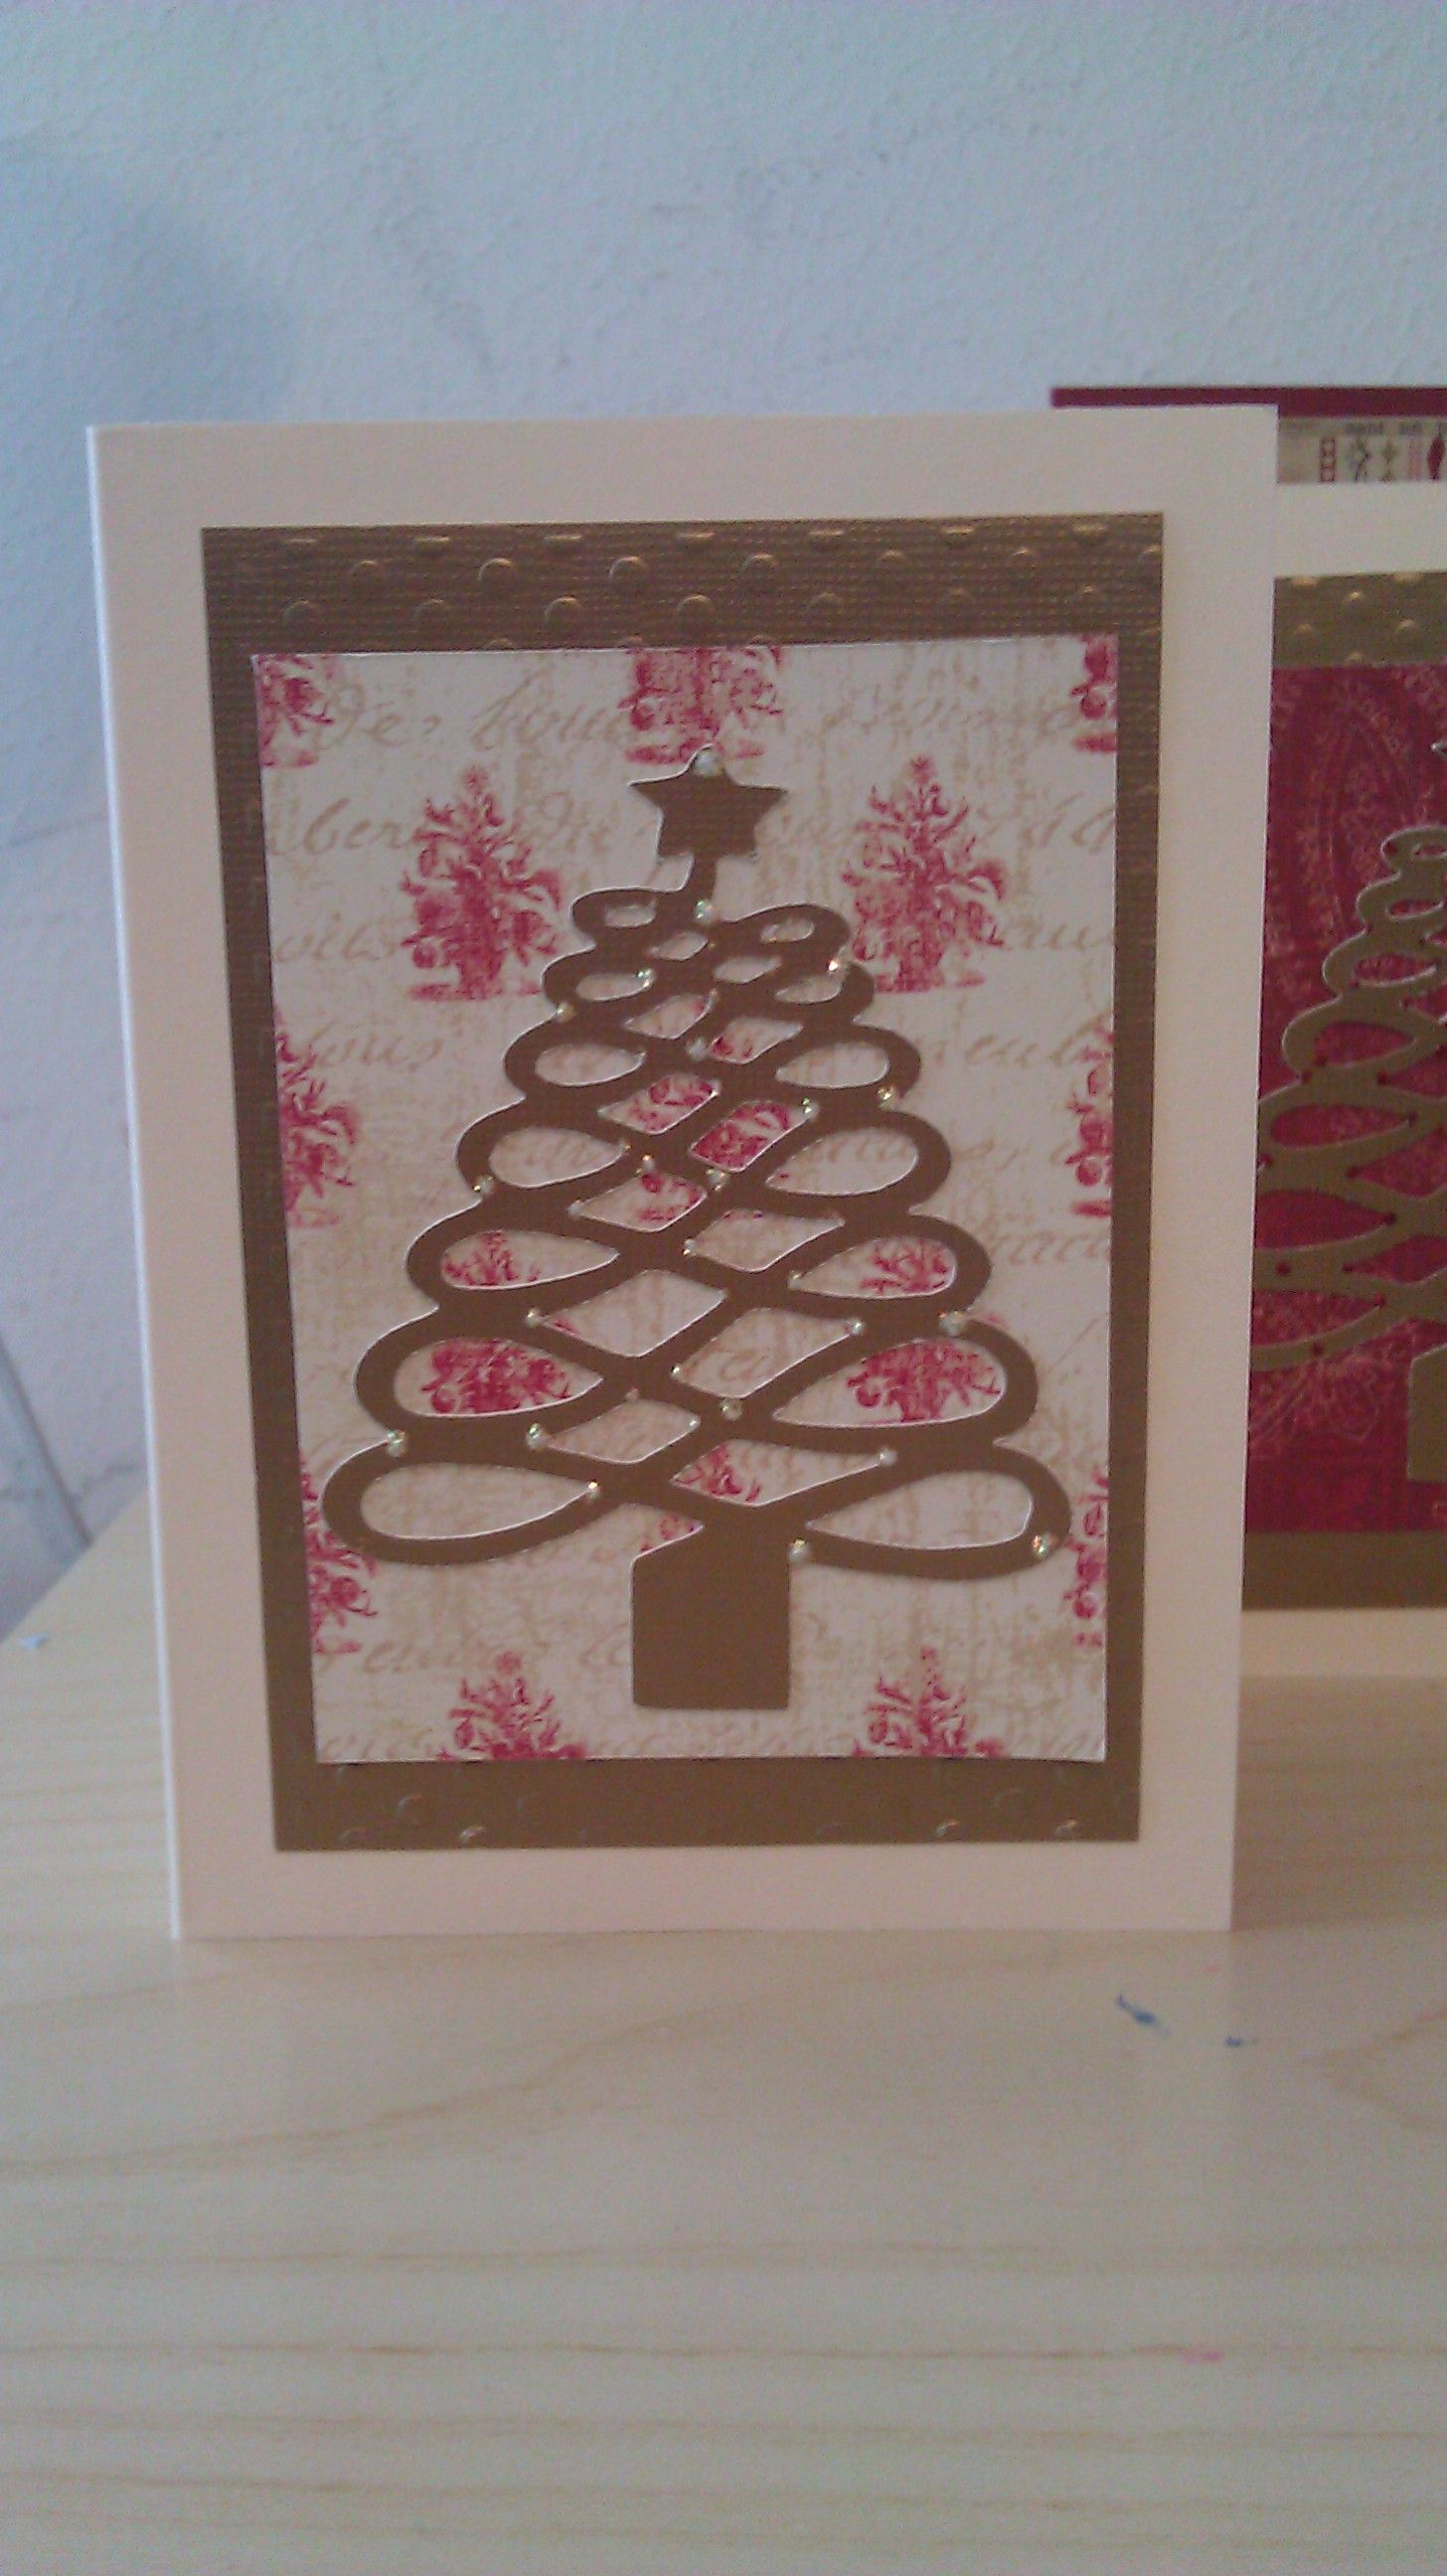 using Theresa Collins December 25th cricut cartridge